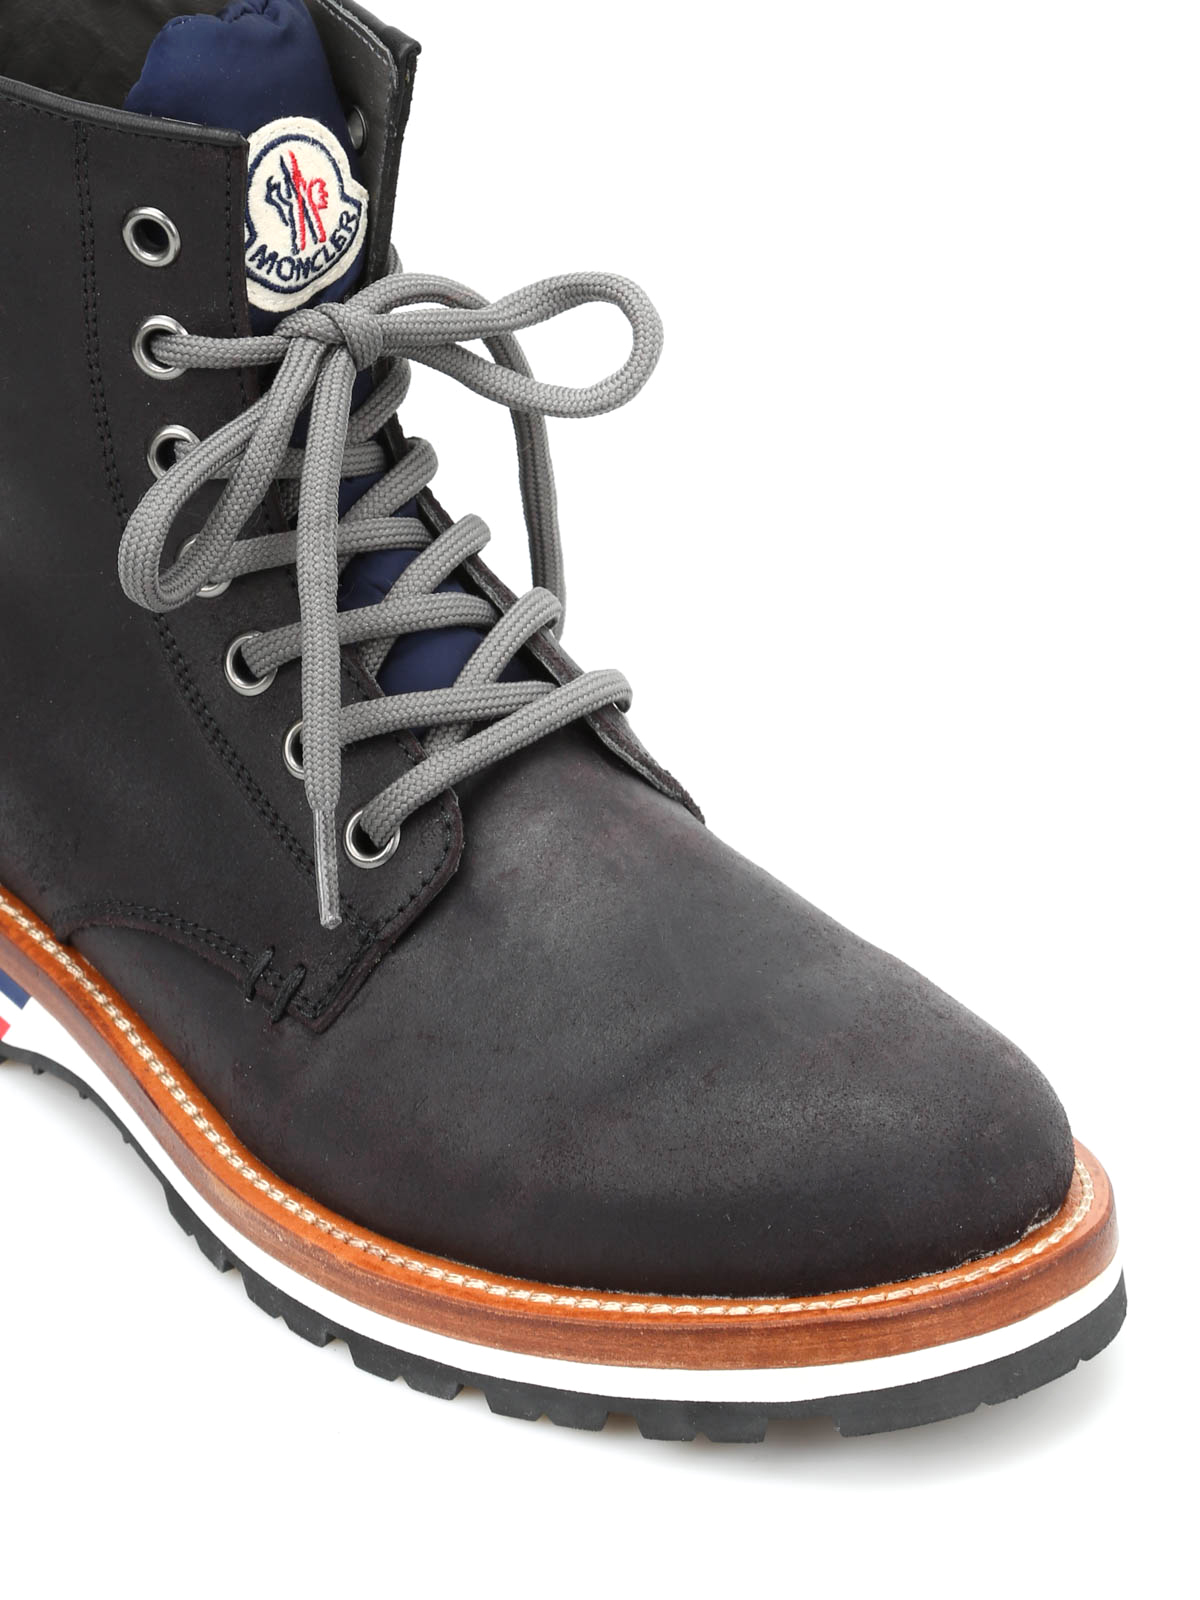 Moncler New Vancouver Boots | B2 09A 1016200 Brown